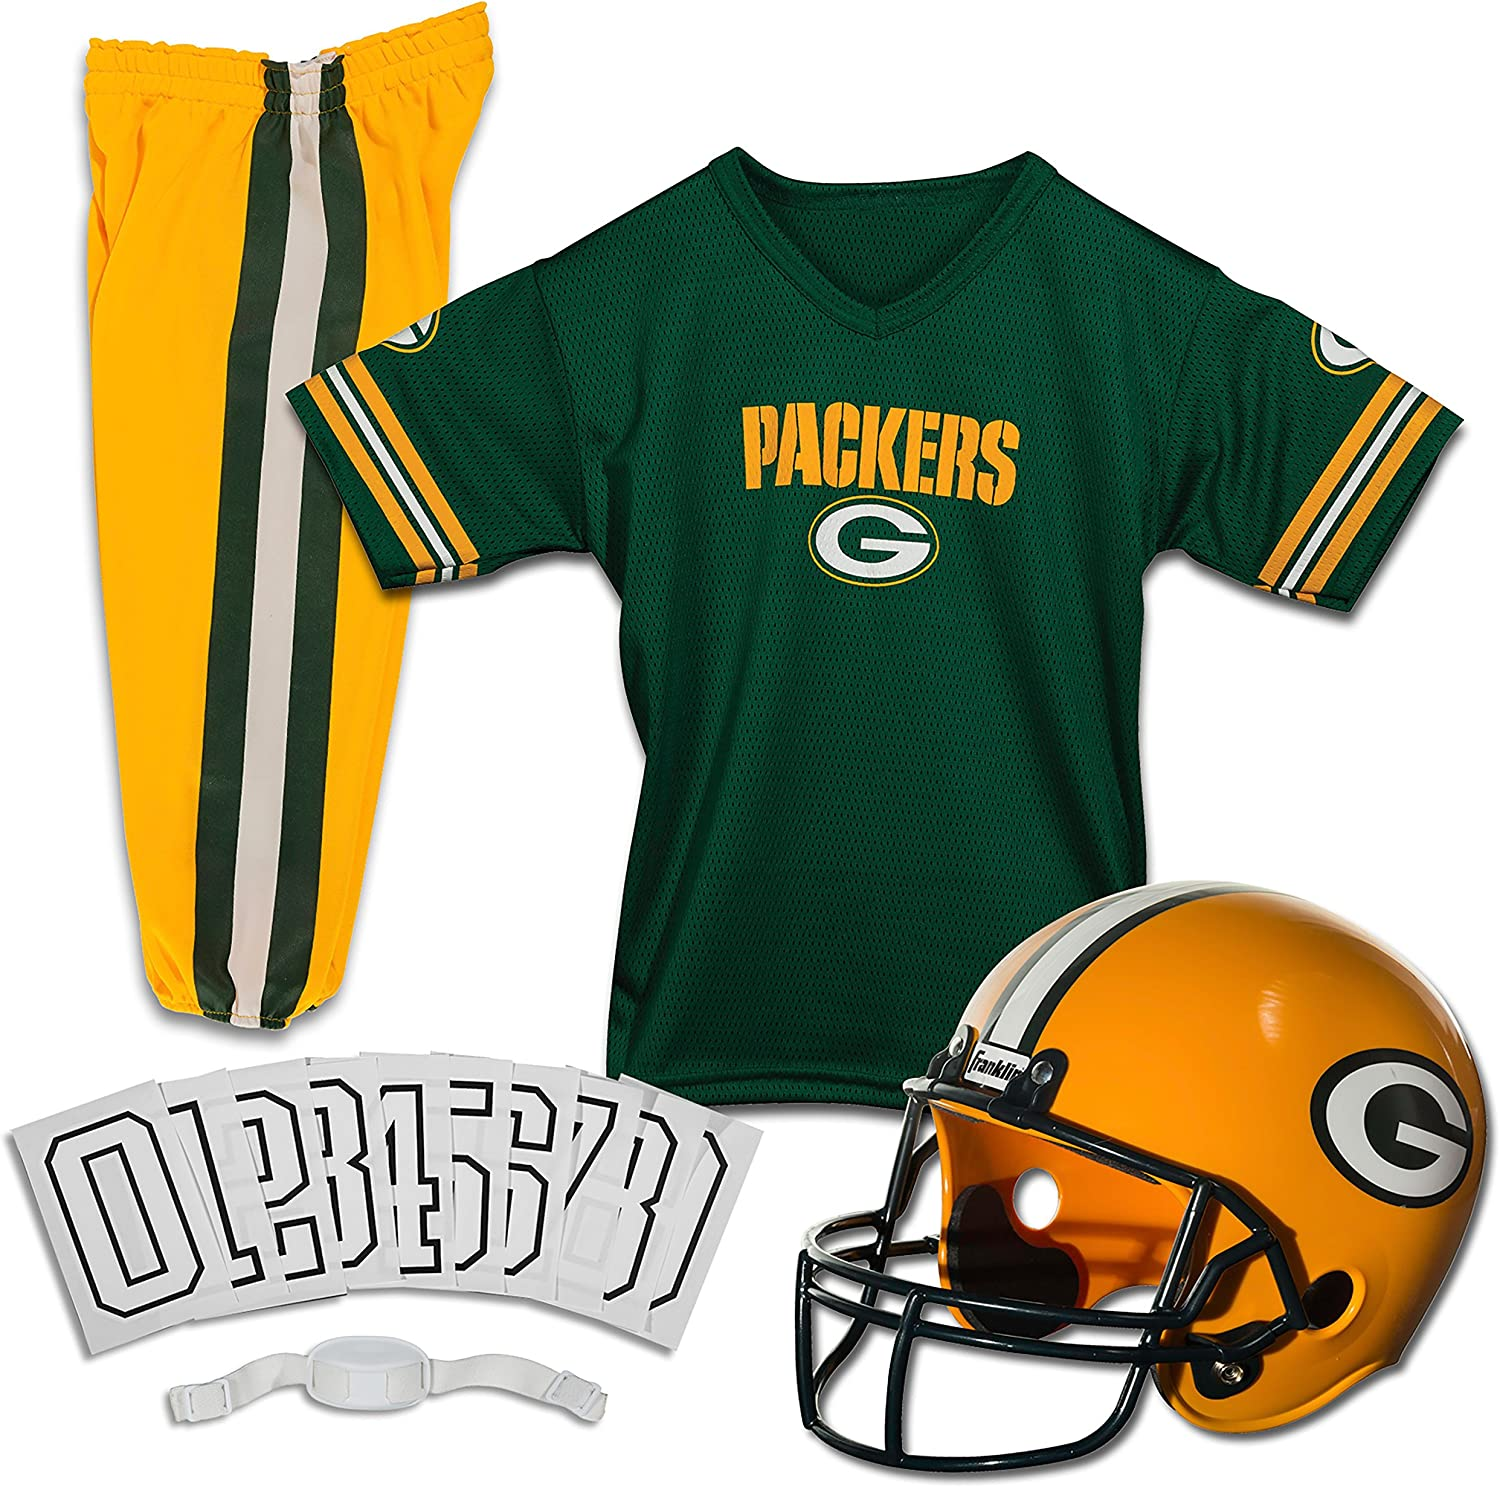 CHILDS NFL PACKERS HELMET AND UNIFORM SET Size Medium